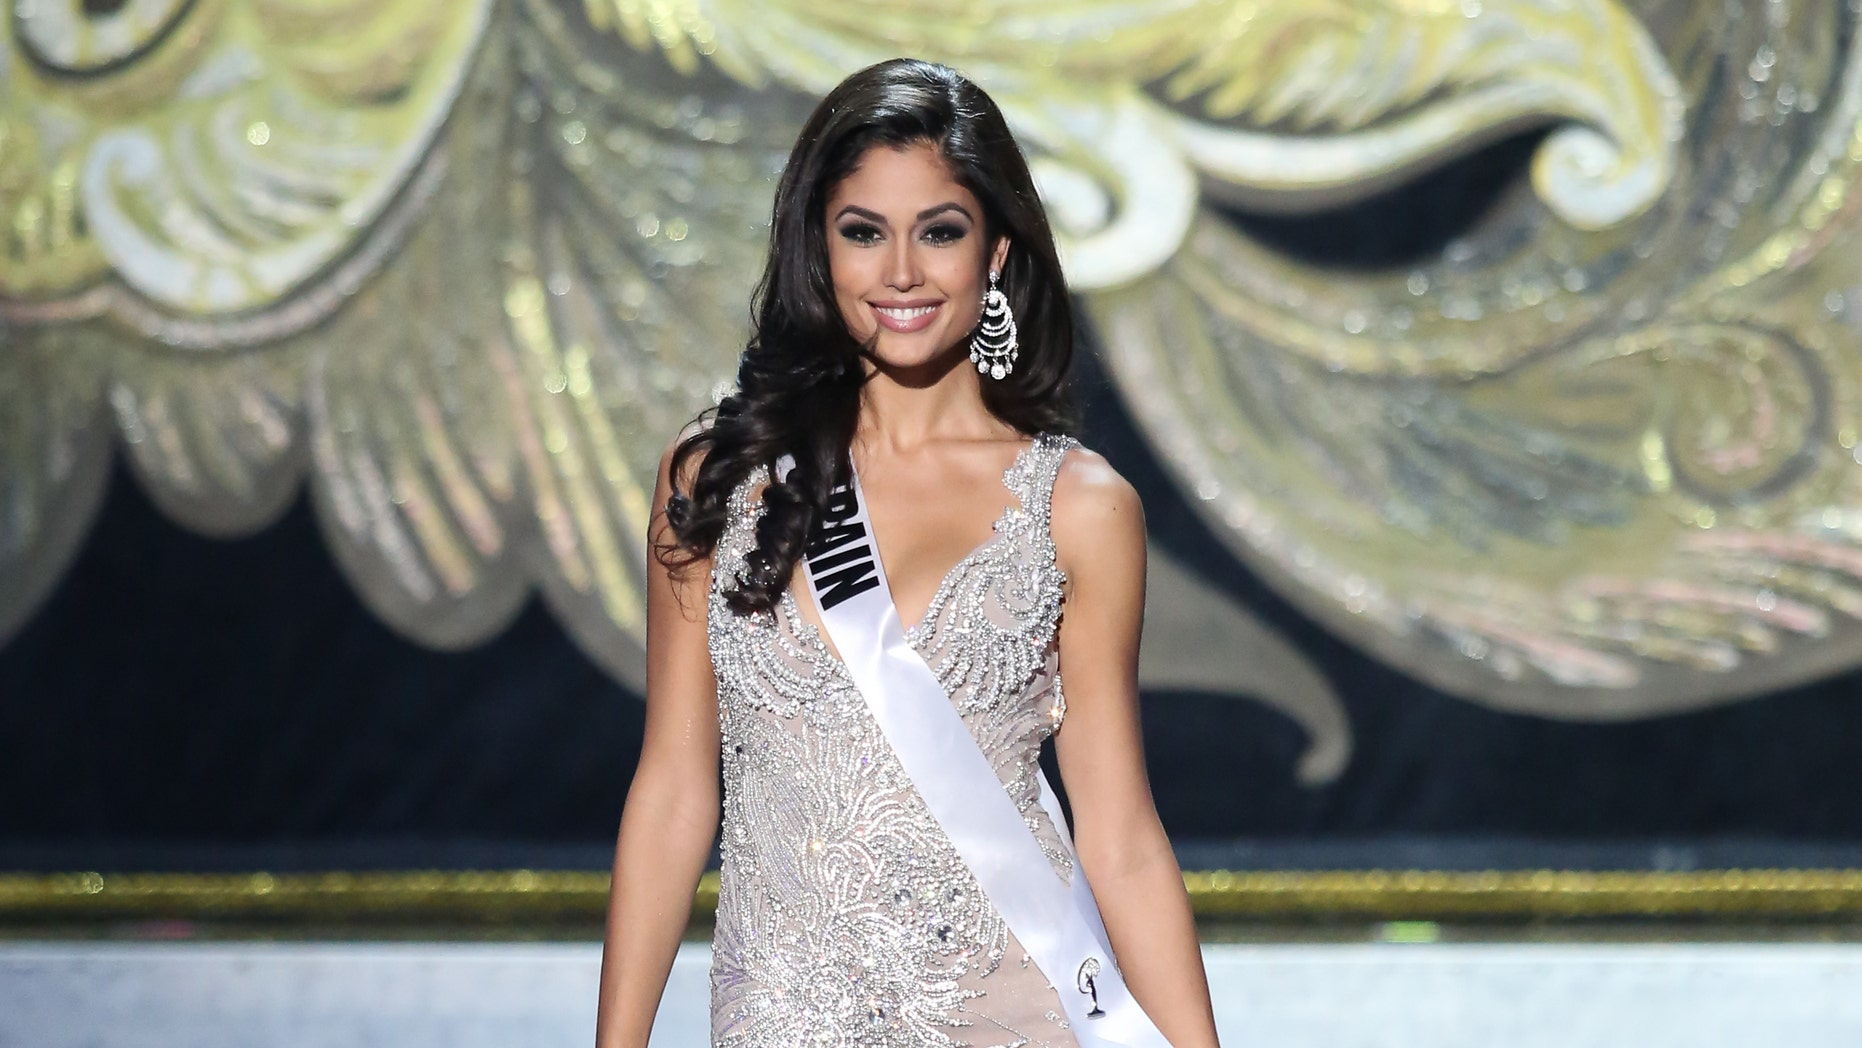 Patricia Yurena Rodriguez during the Miss Universe Pageant on November 9, 2013 in Moscow, Russia.